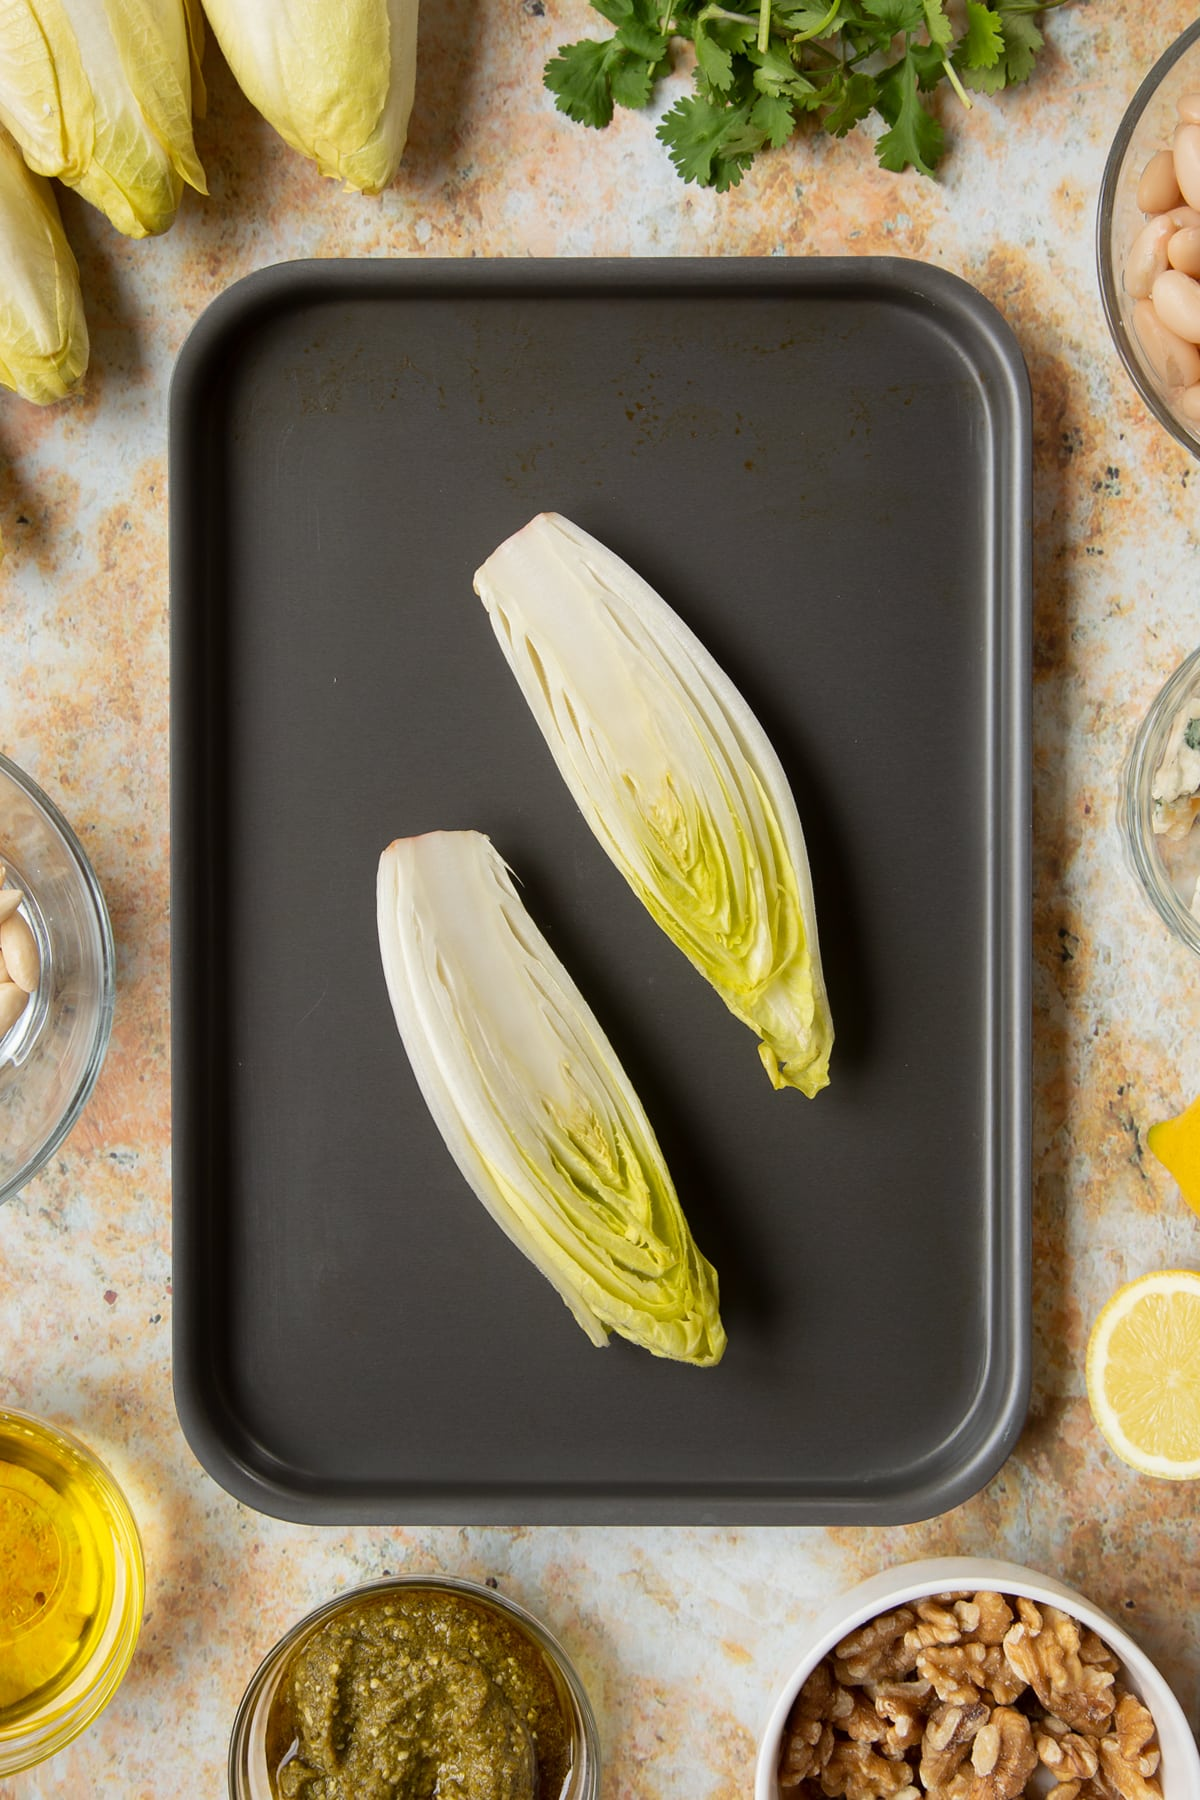 Chicory halves on a tray.